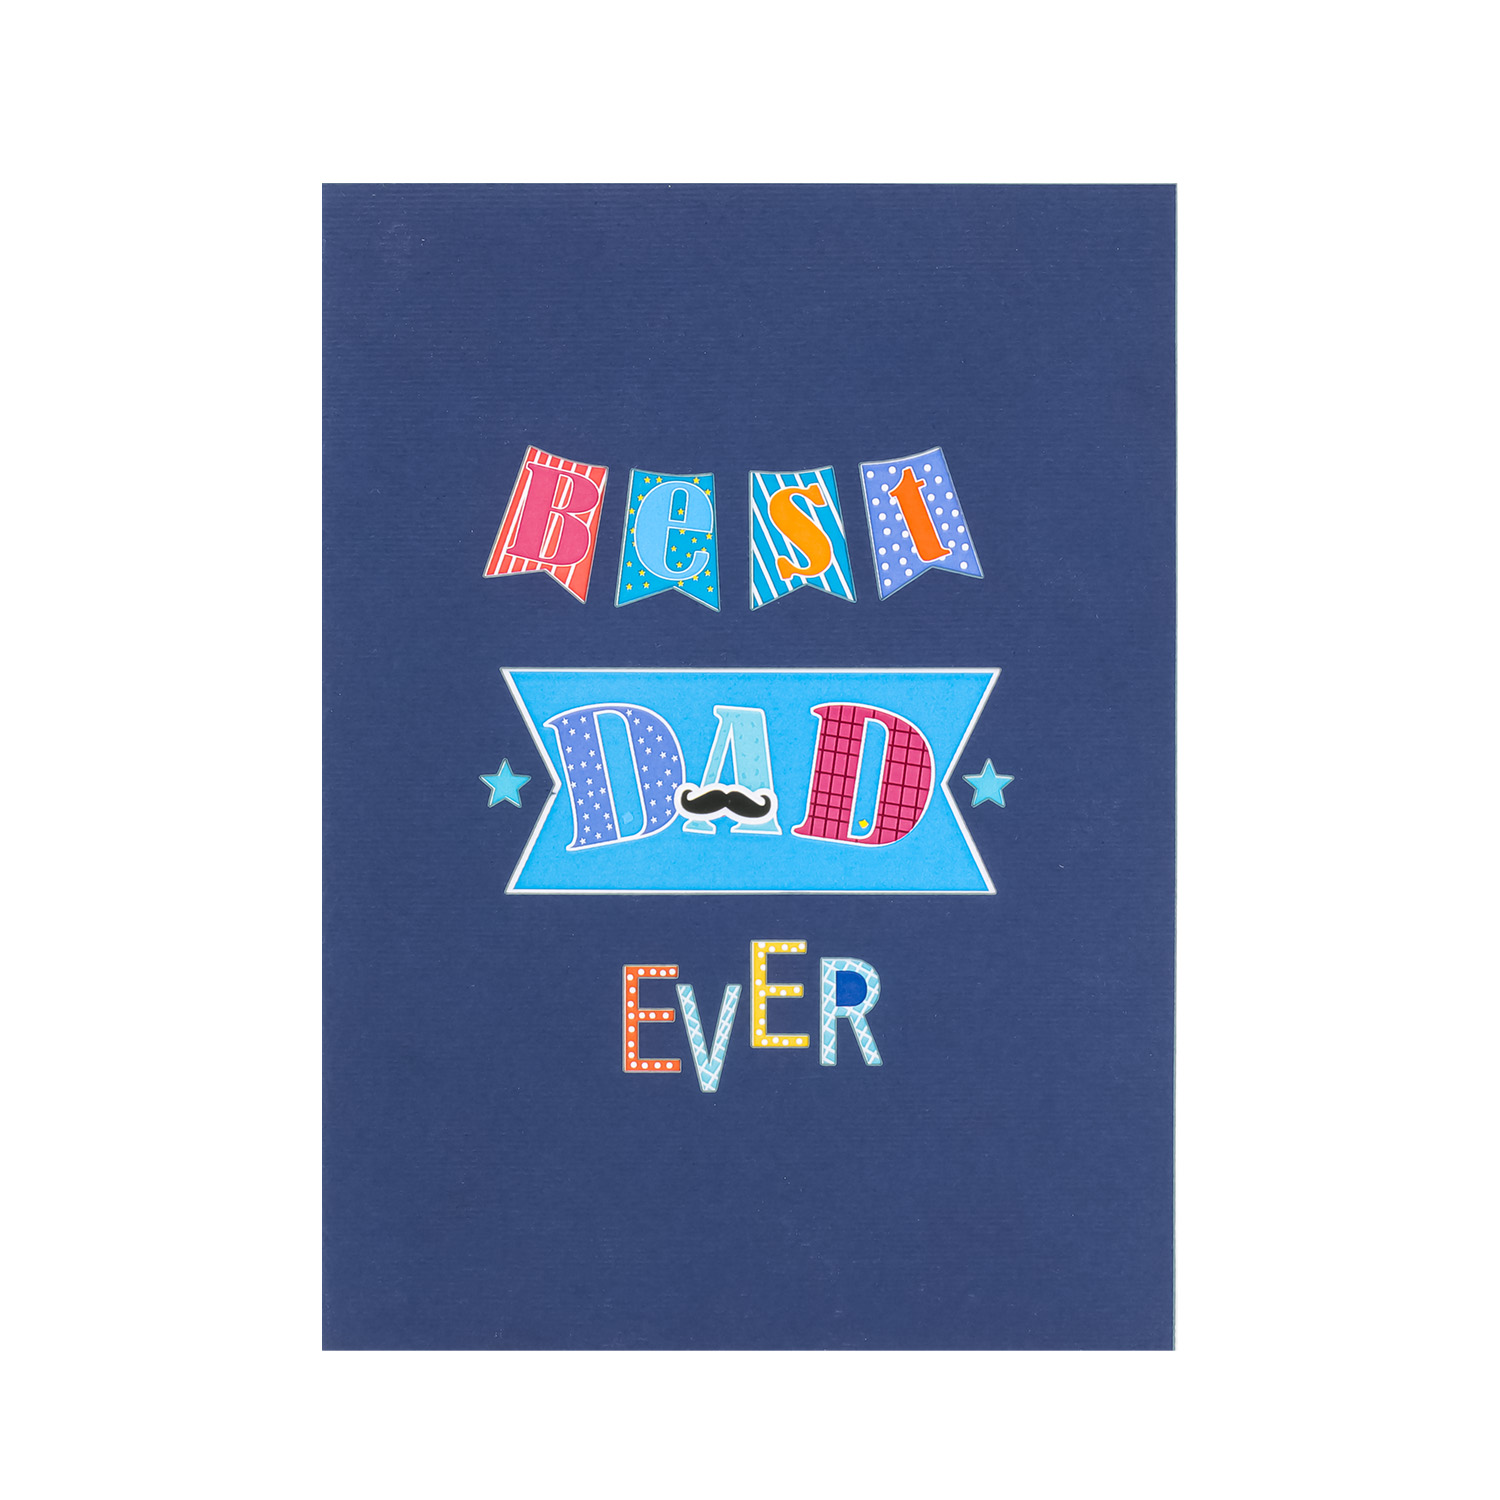 Best-Dad-Ever-Pop-Up-Card-Cover-FS133-Best-Dad-Ever-Pop-Up-Card-Fathers-day-pop-up-card-birthday-pop-up-card-just-because-pop-up-card.jpg